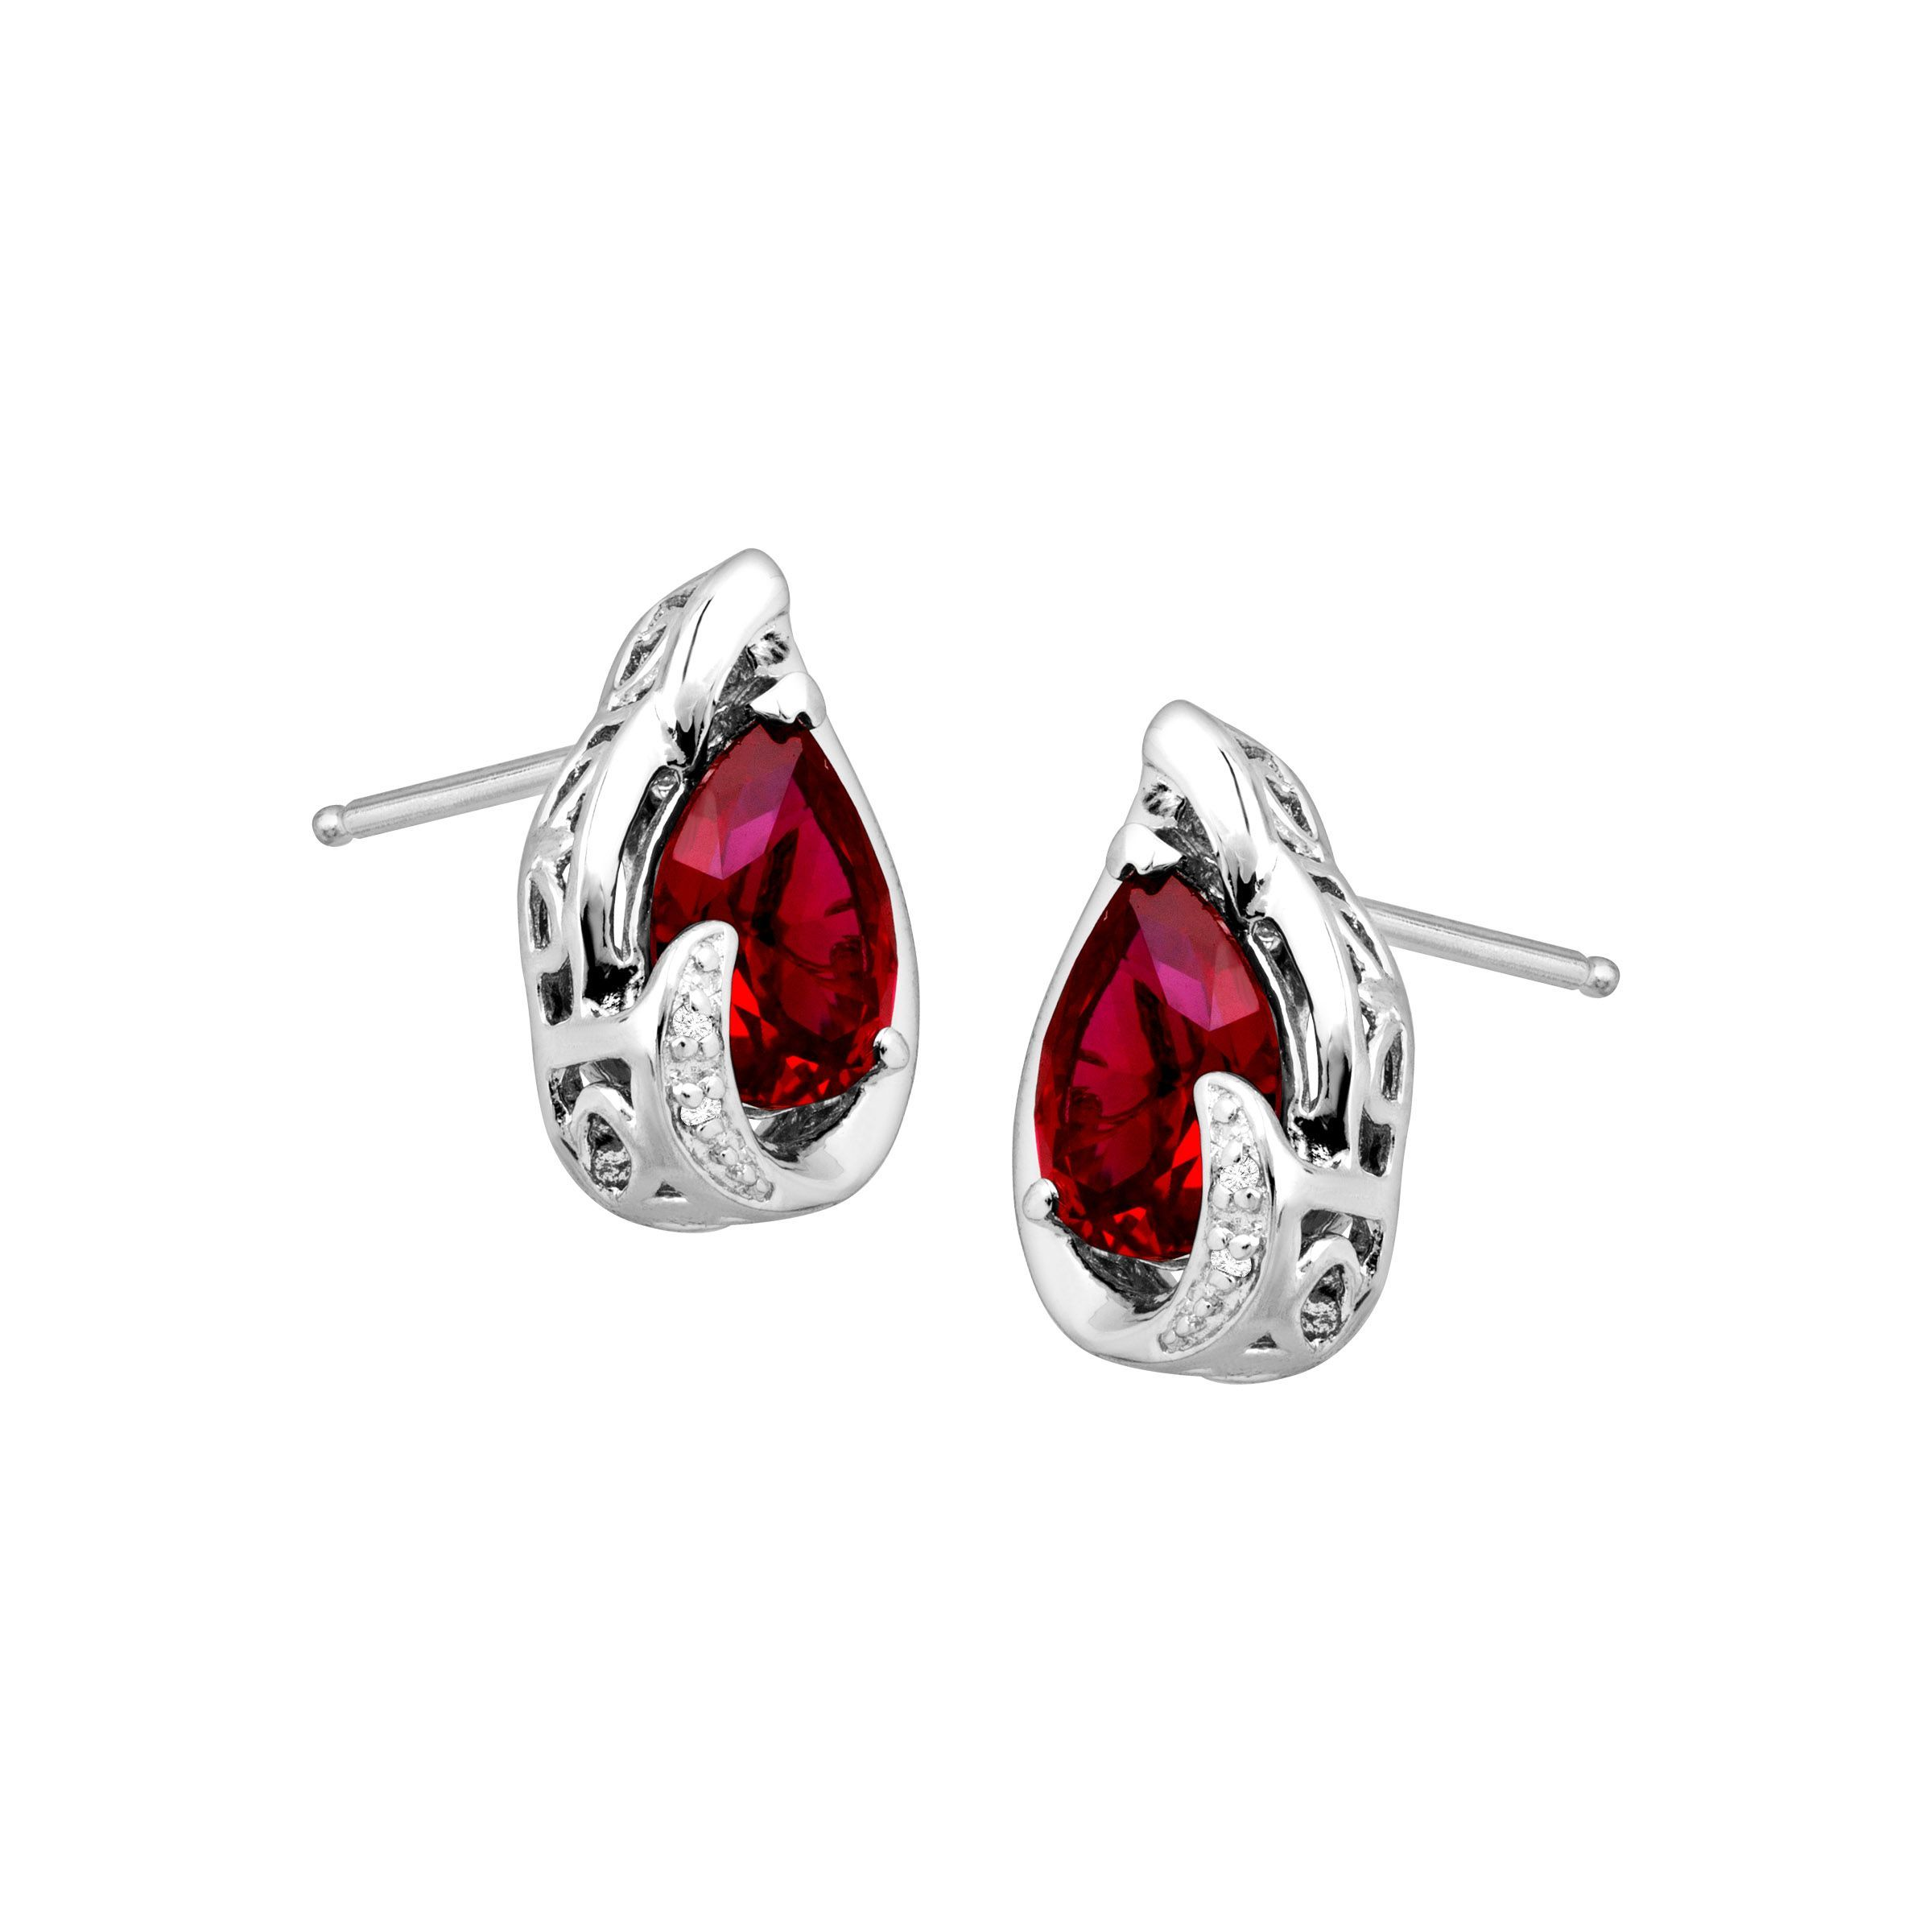 birthday gemstone gift gem july everyday red traditional simple stud silver earrings womens rubies birthstone ruby products earring sterling earrin collage